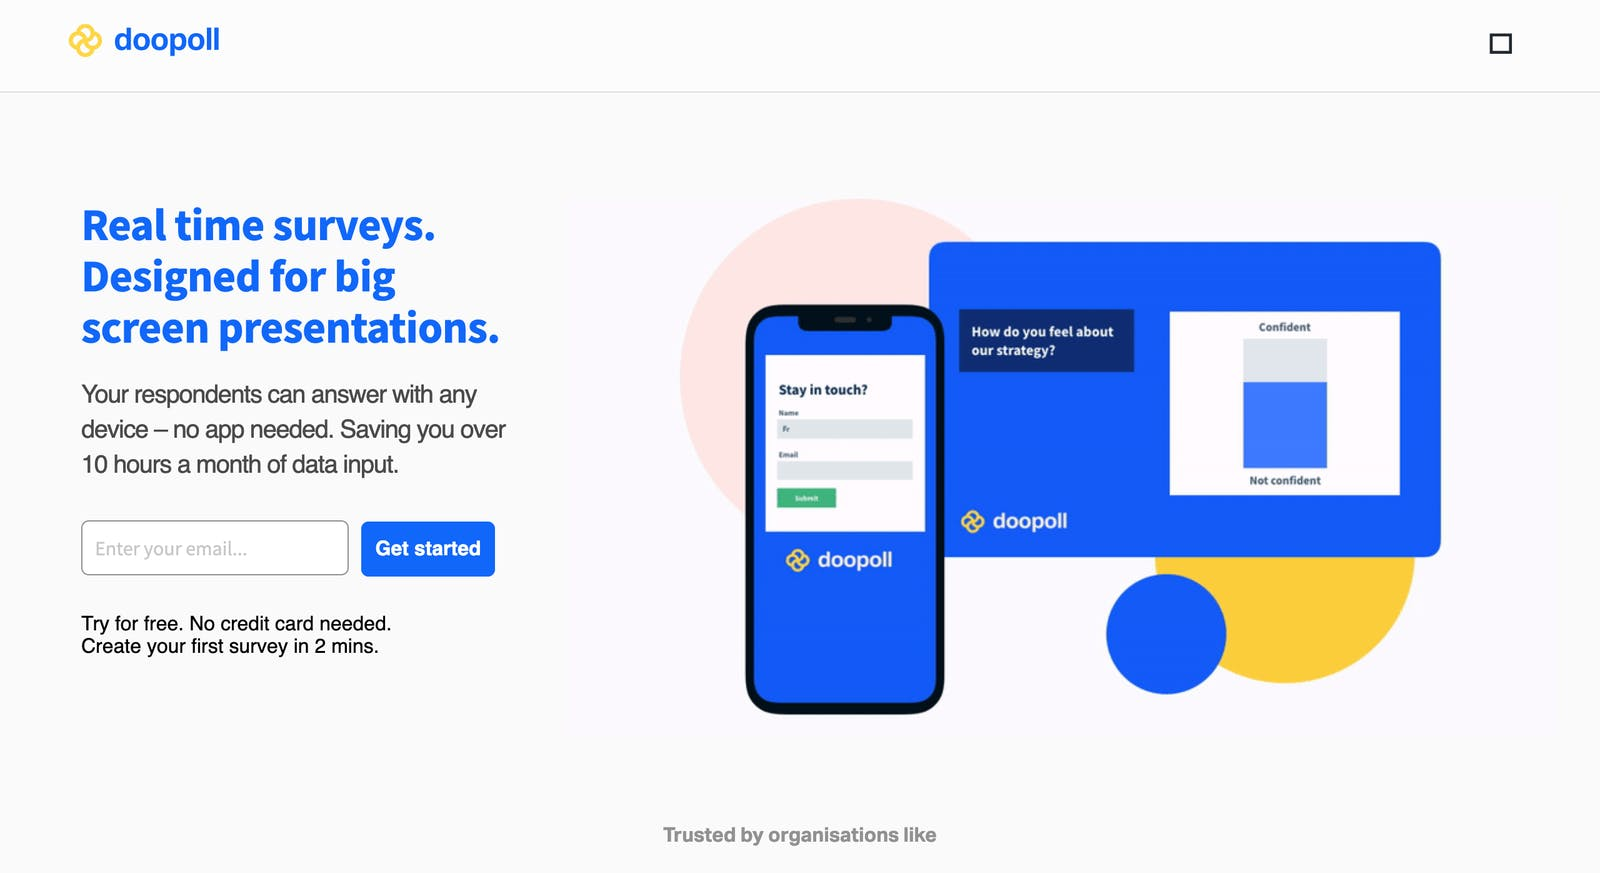 Post growth landing page copy